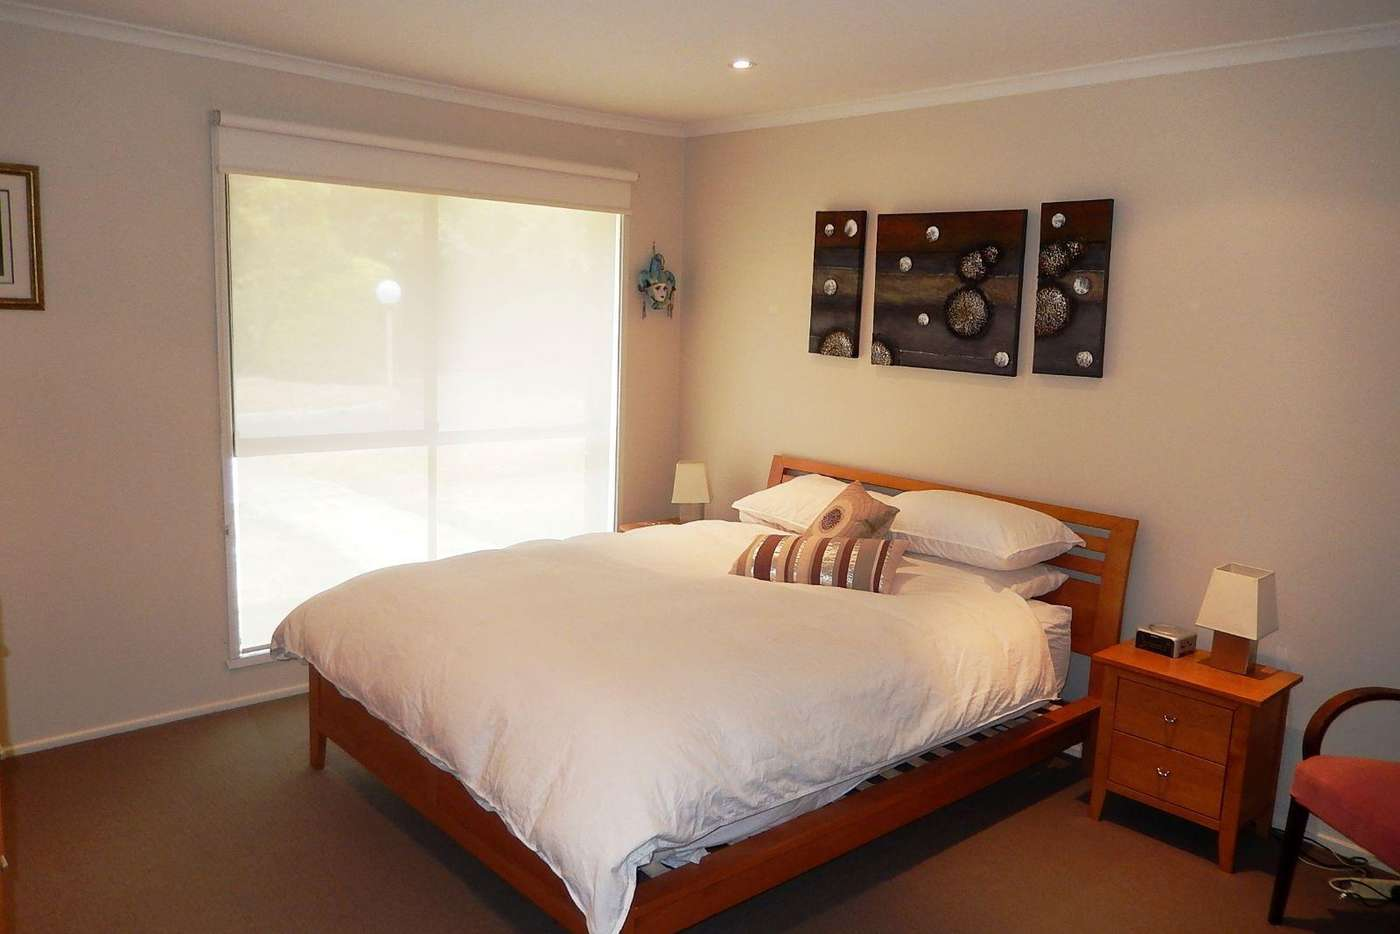 Sixth view of Homely unit listing, 3/16 Erskine Street, Nunawading VIC 3131